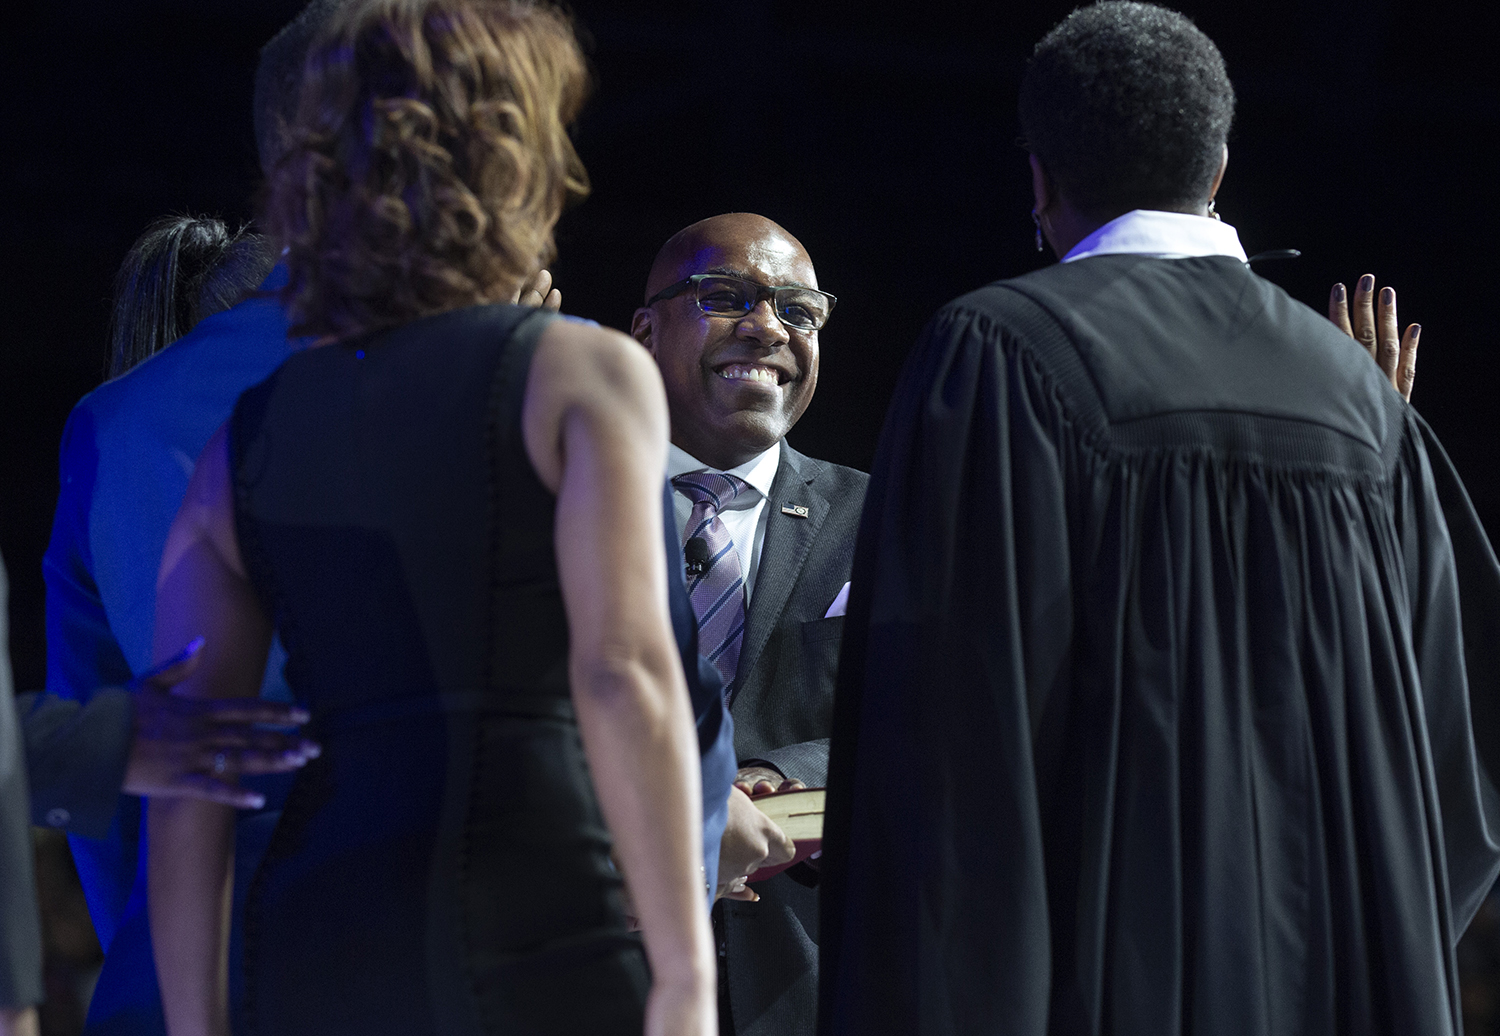 Attorney General Kwame Raoul wears a big smile just as he begins the oath of office administered by Judge Sharon Johnson Coleman during the Illinois Inaugural Ceremony Monday, Jan. 14, 2019 a the Bank of Springfield Center in Springfield, Ill. [Rich Saal/The State Journal-Register]